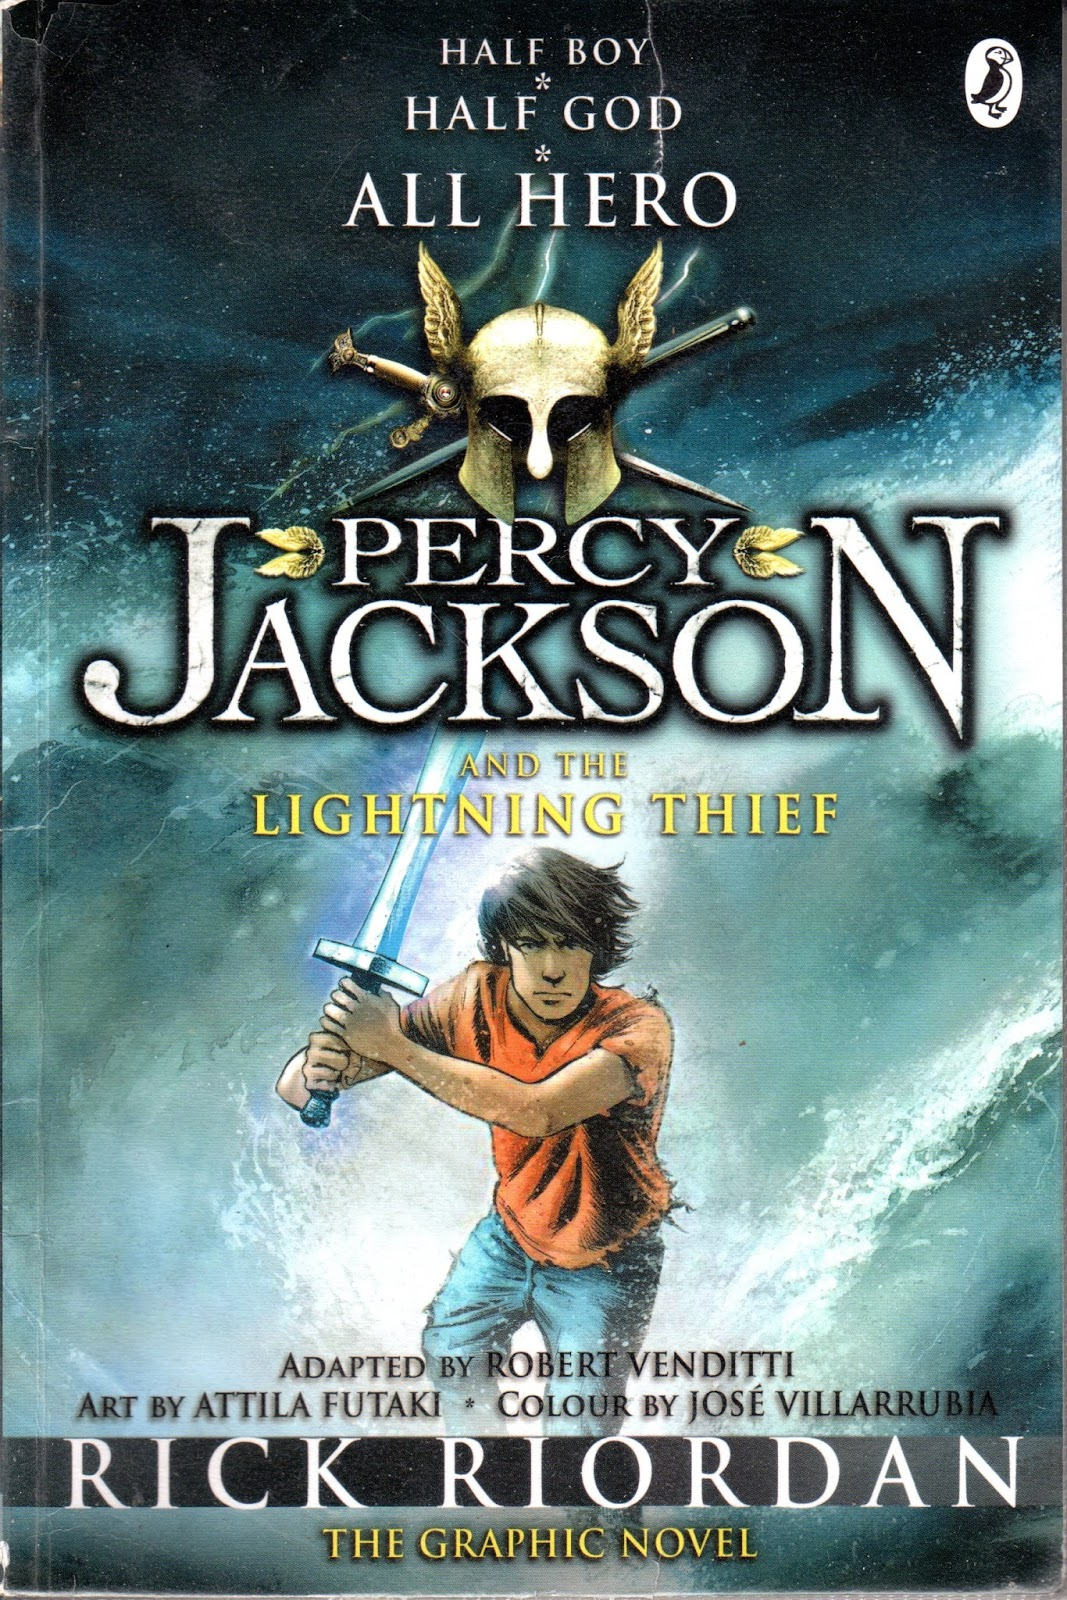 Elementaread REVIEW 39 Percy Jackson And The Lightning Thief 39 Graphic